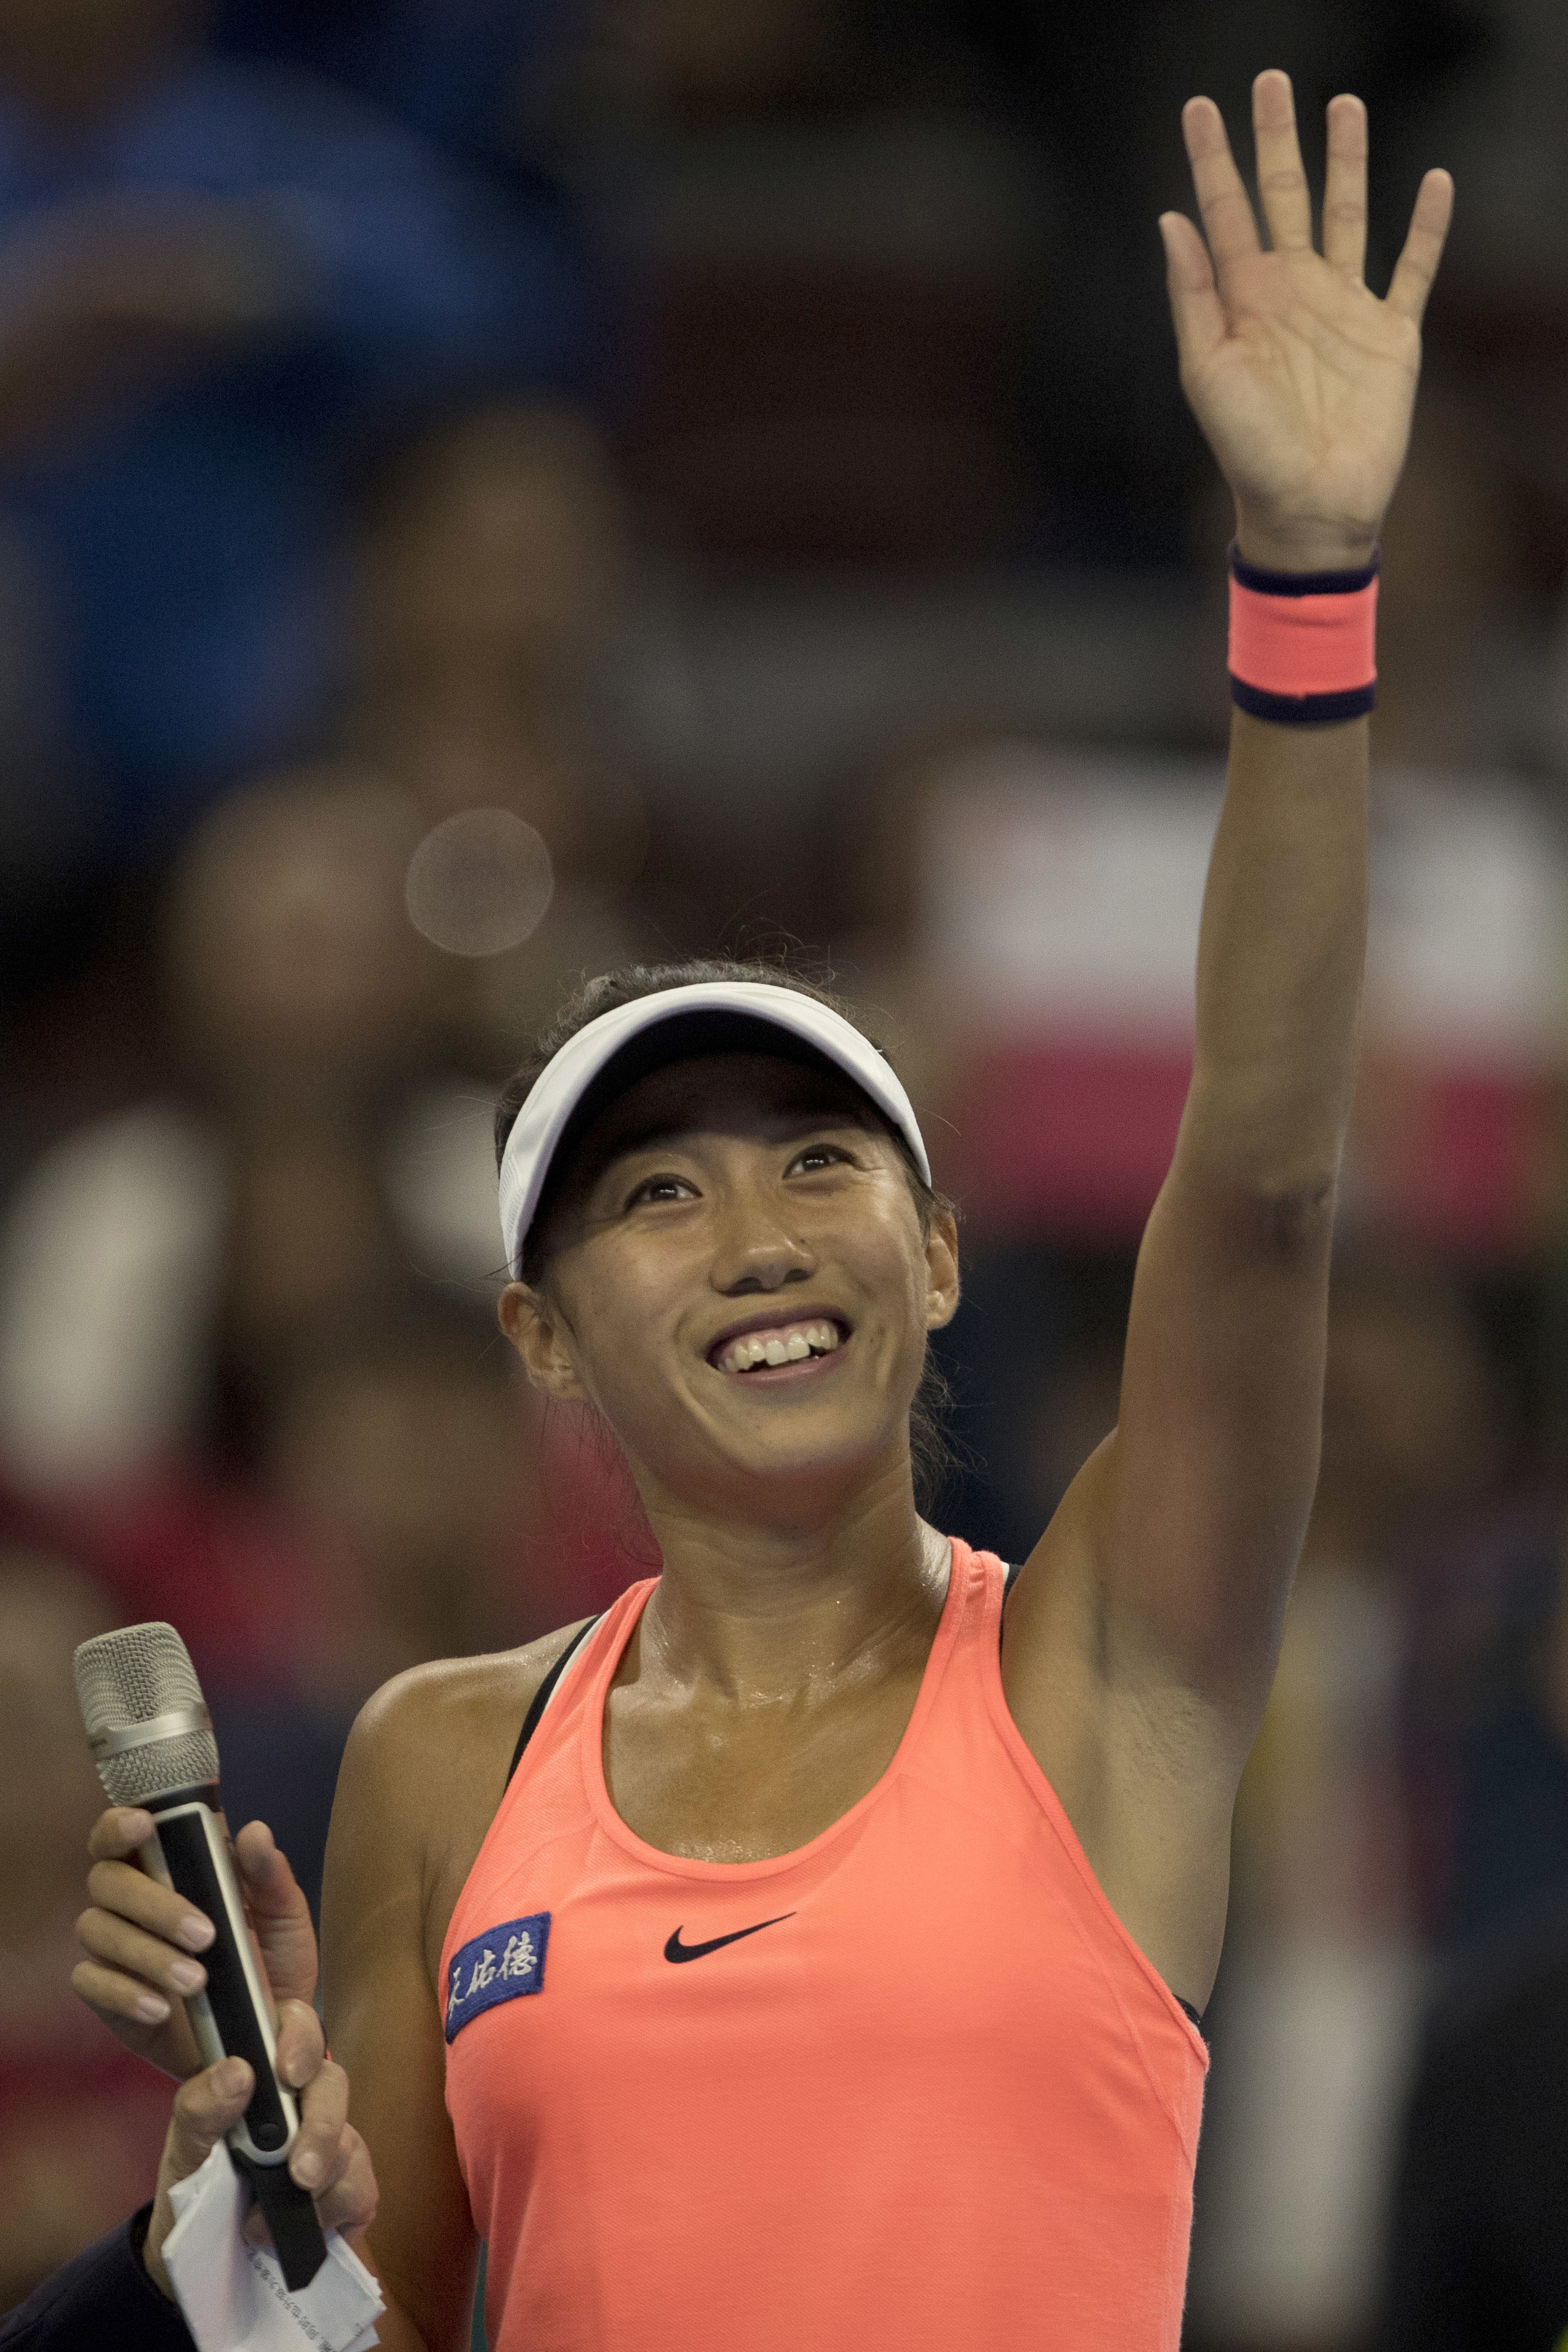 Zhang Shuai of China celebrates after defeating Simona Halep of Romania in a women's singles match of the China Open tennis tournament in Beijing, Thursday, Oct. 6, 2016. (AP Photo/Ng Han Guan)